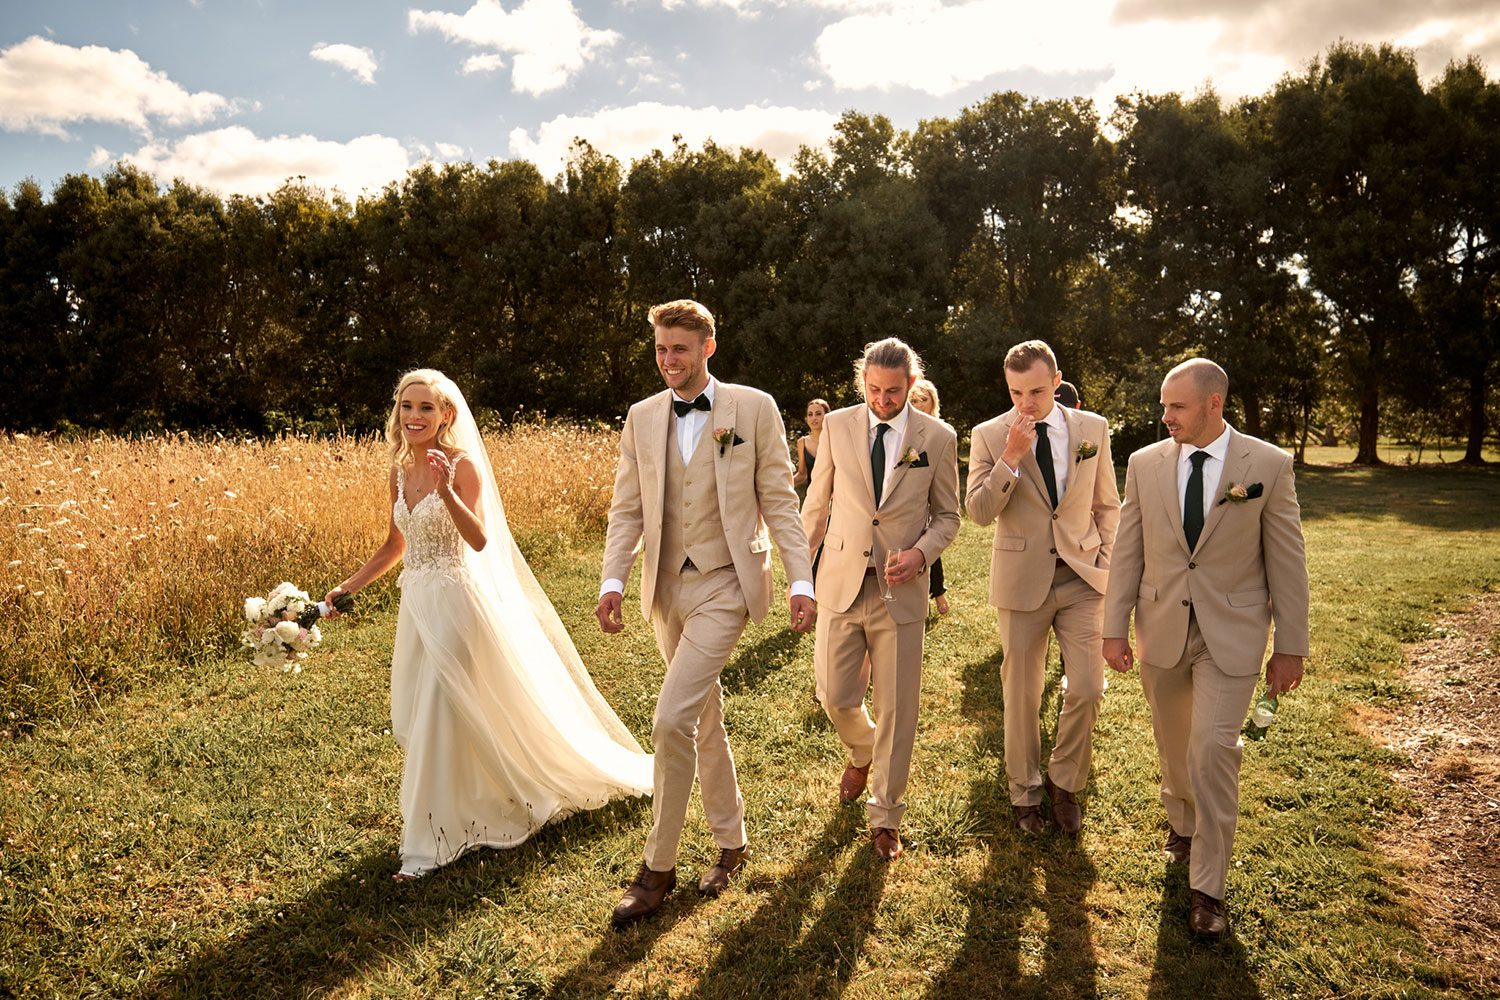 Bride wearing bespoke gown made of silk chiffon with delicate flower lace bodice by Vinka bridal designer Auckland - with groom and groomsmen in field